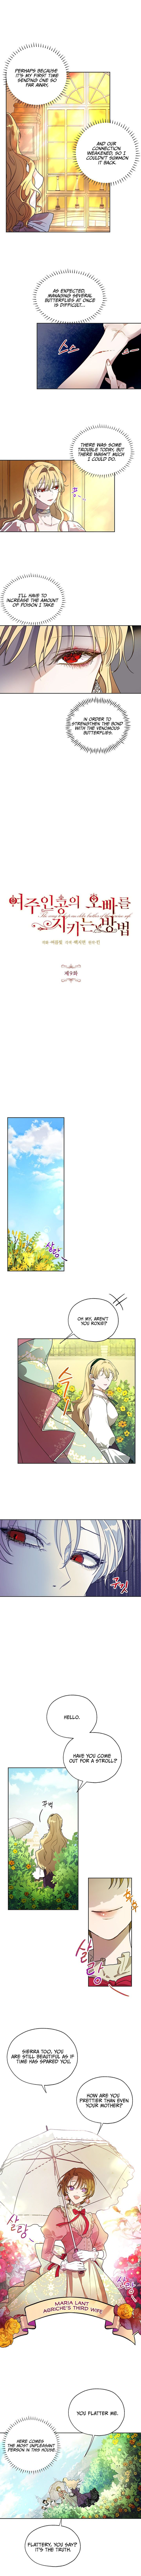 The Way To Protect The Female Lead'S Older Brother - chapter 9 - #2